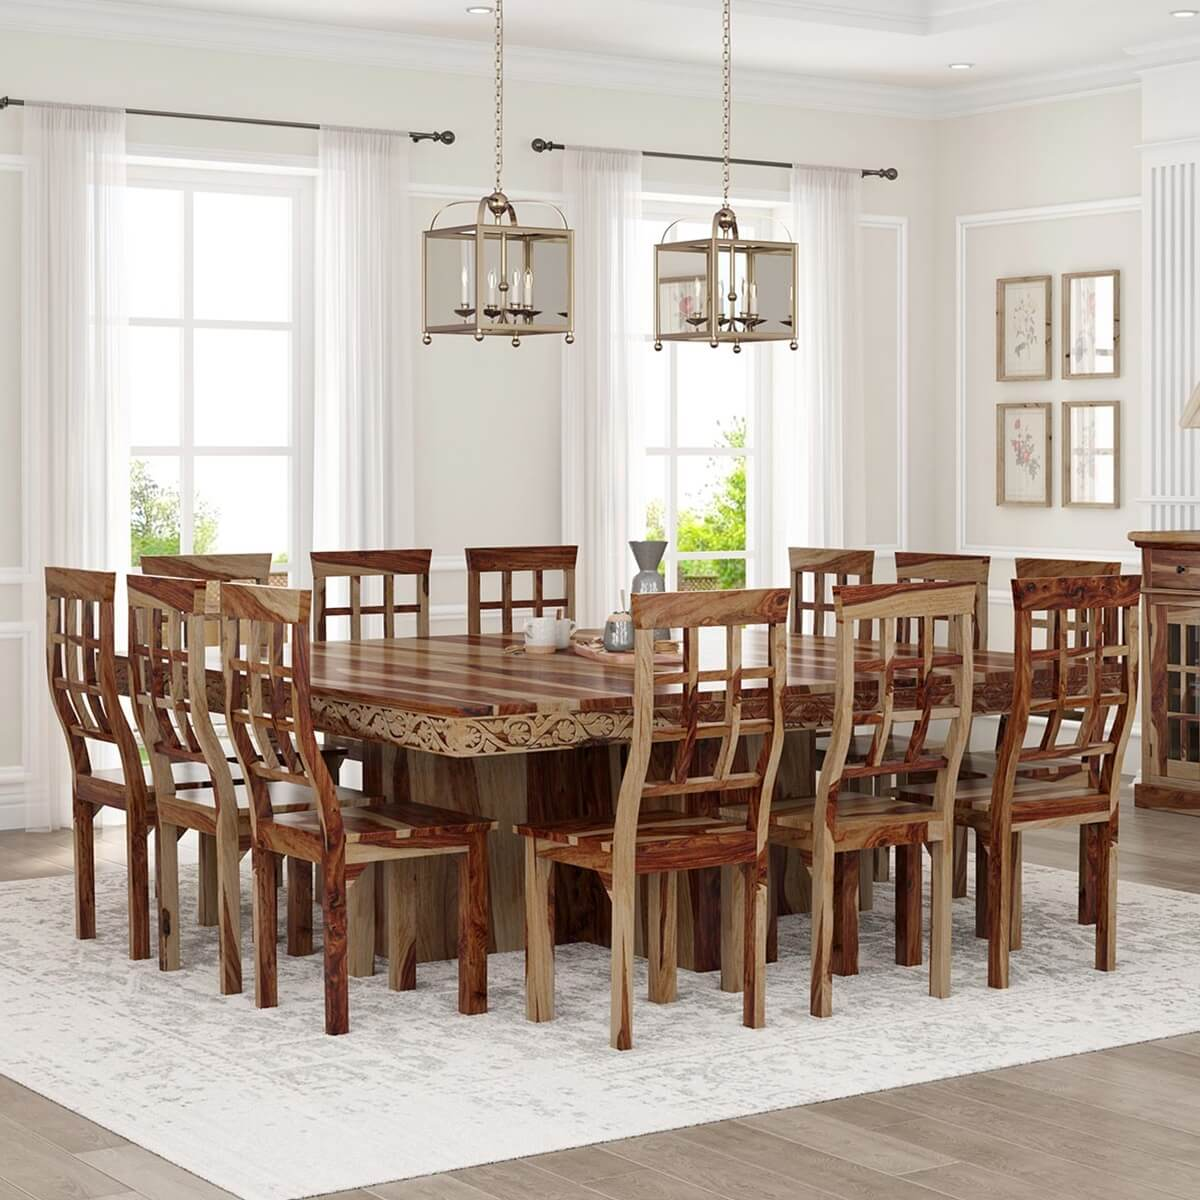 Dallas ranch large square dining room table and chair set for Large dining room table